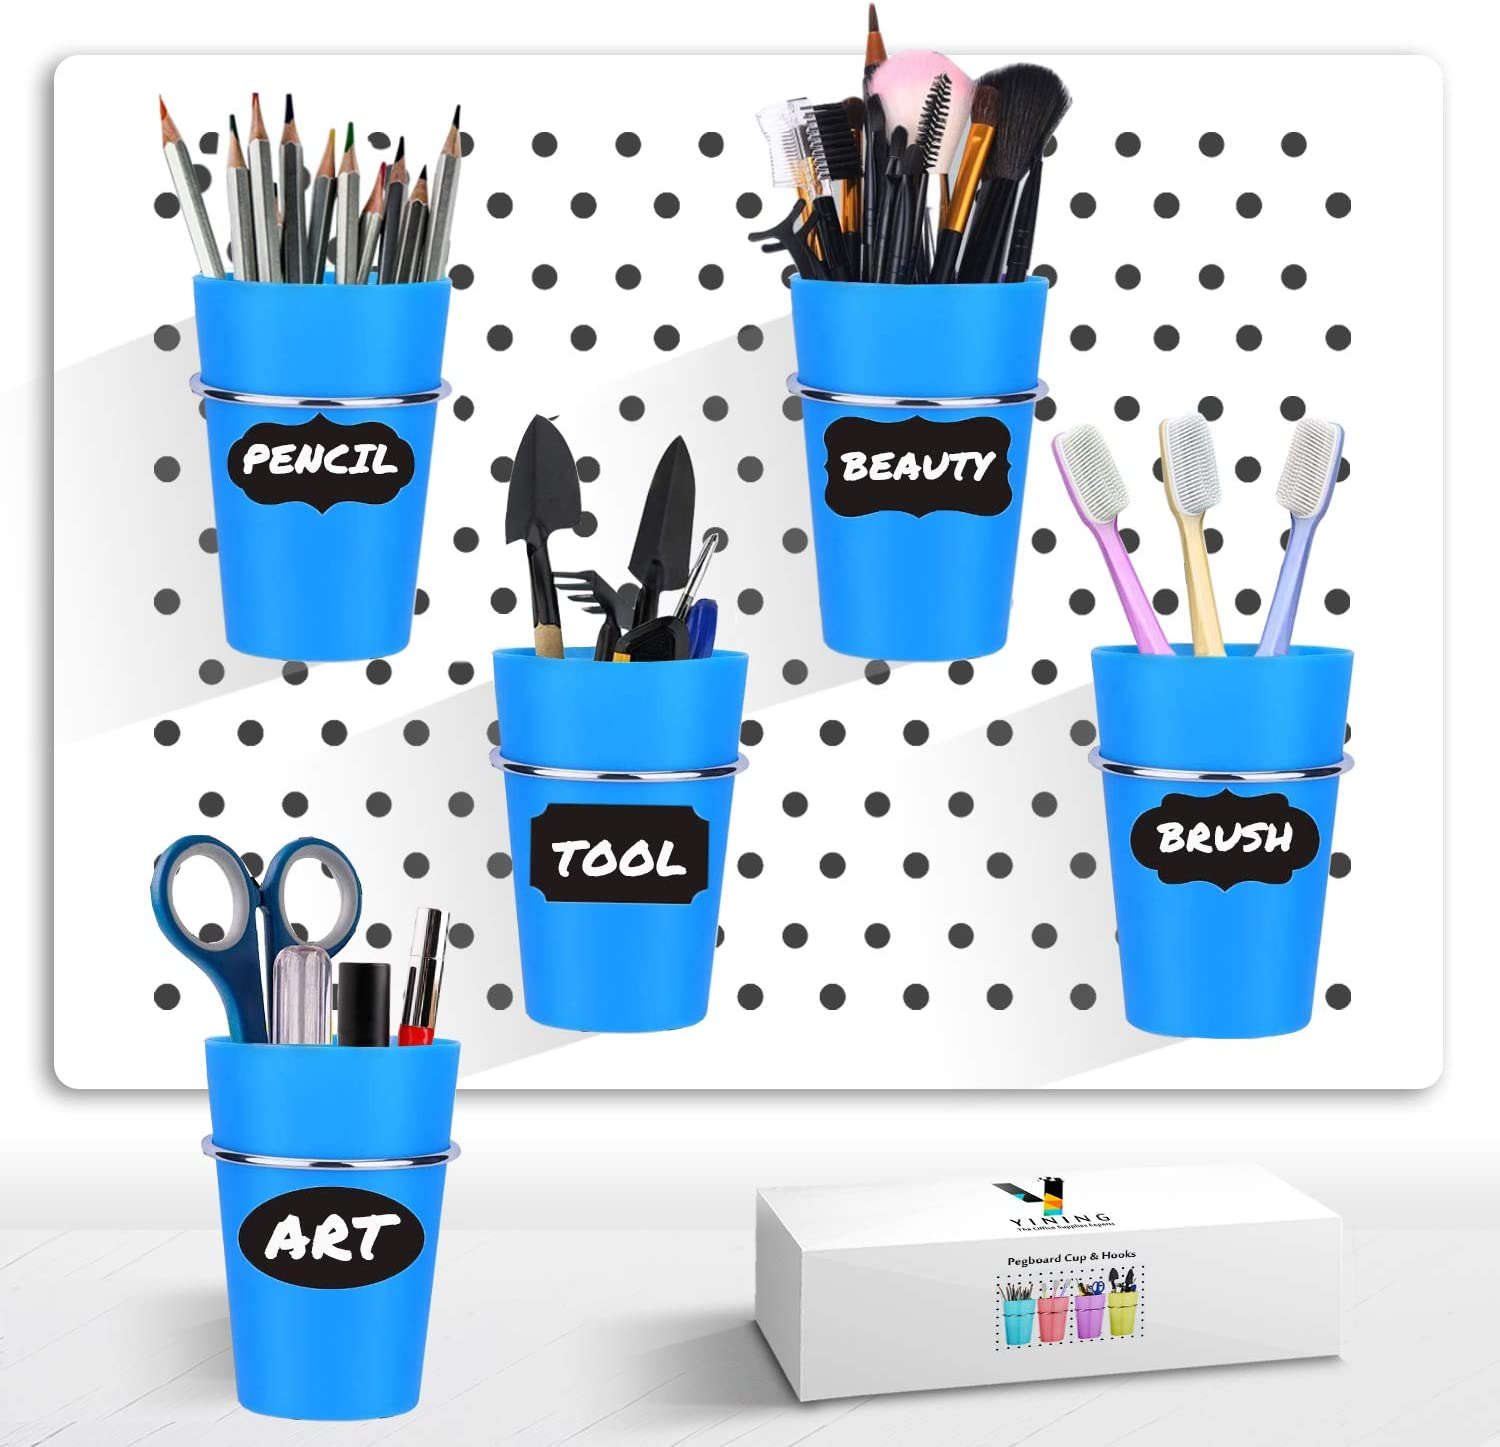 Pegboard Cup with Hooks, 5 Set Pegboard Bins Kit Storage Organizer Holder Accessories for Pegboard, Crafts, Garden, Washroom, Workshop, office desk - Middle Size (Blue)